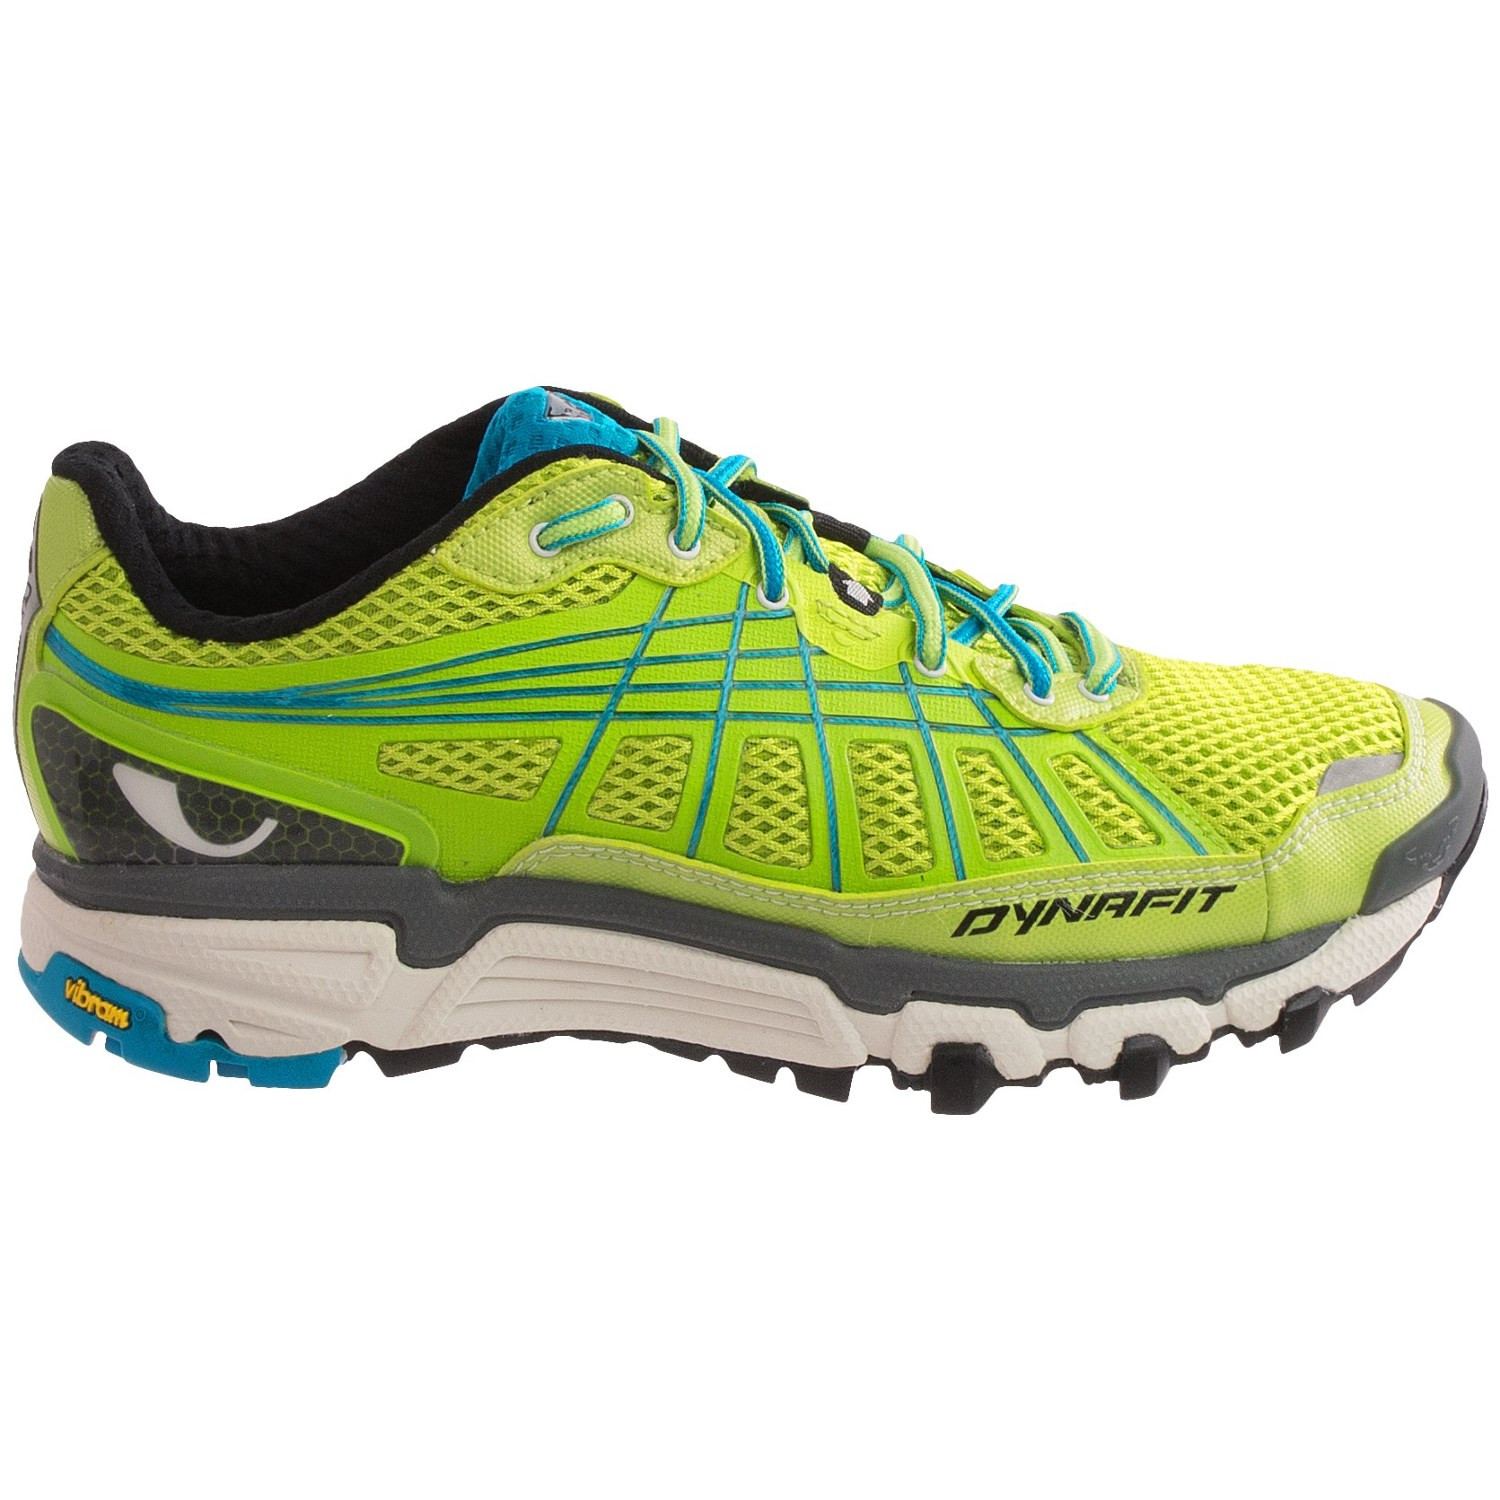 Sierra Trading Post Merrell Trail Running Shoes